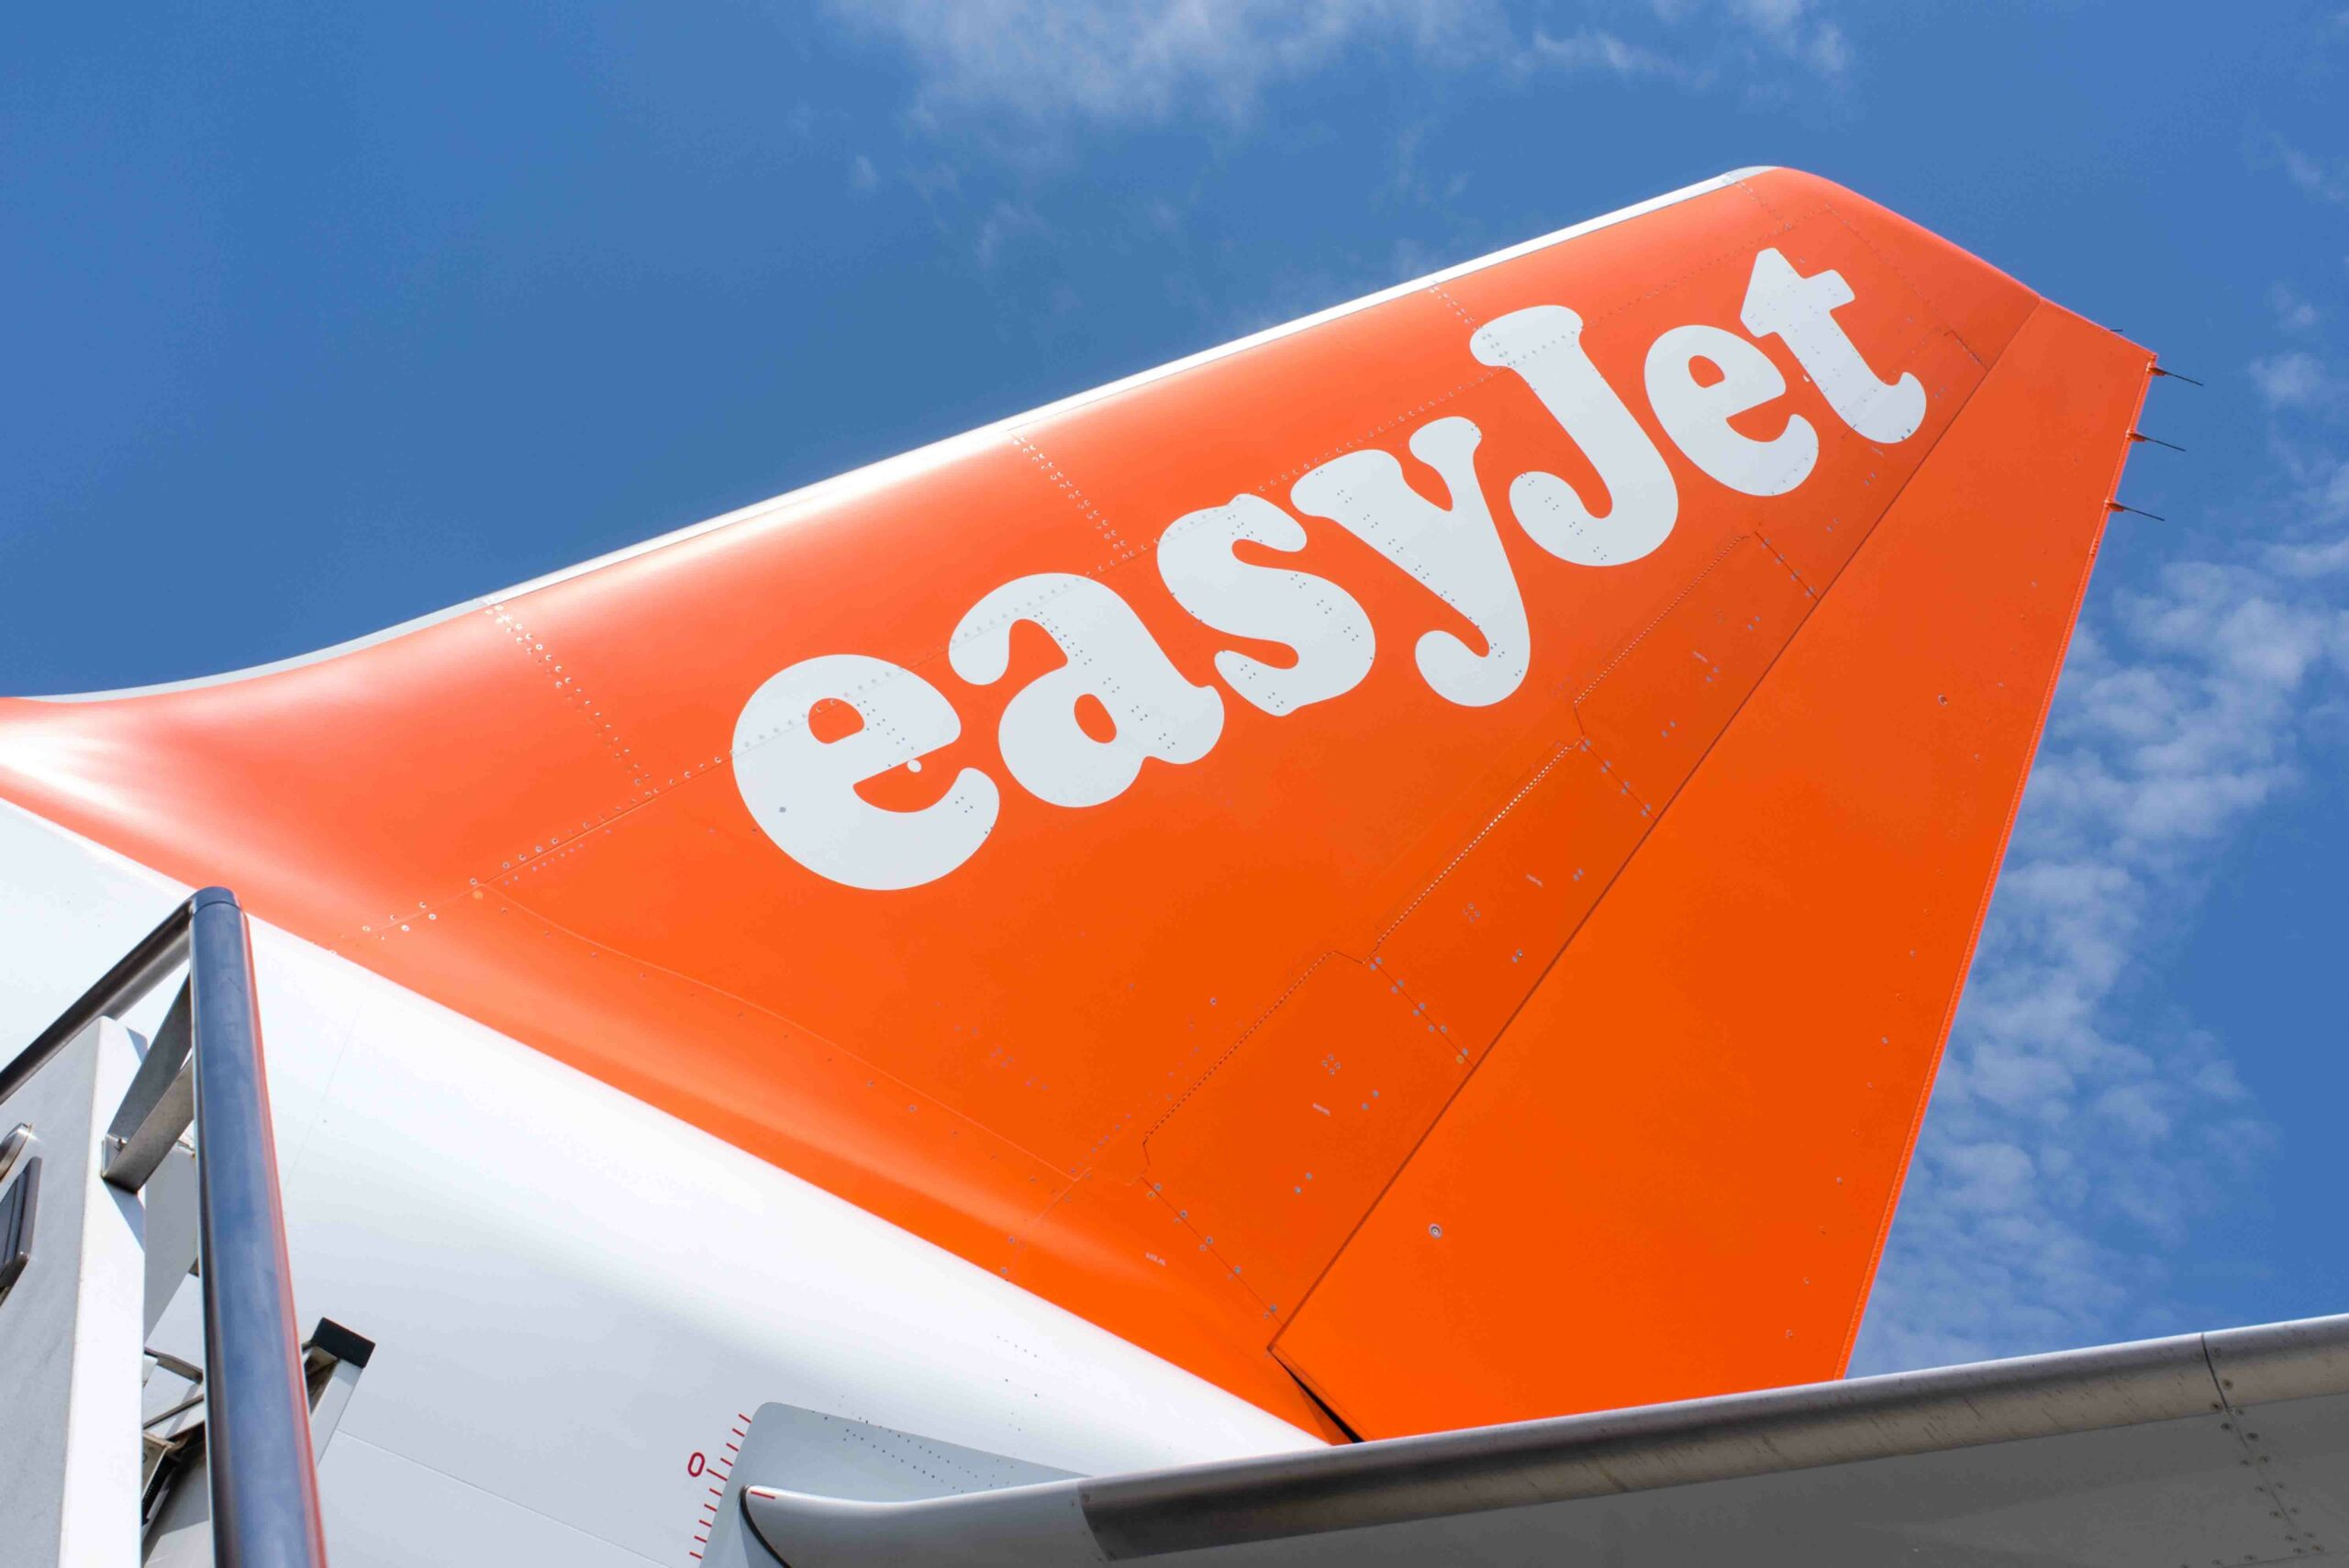 EasyJet is getting closer to their zero-emission airplanes Atlas Logistic Network